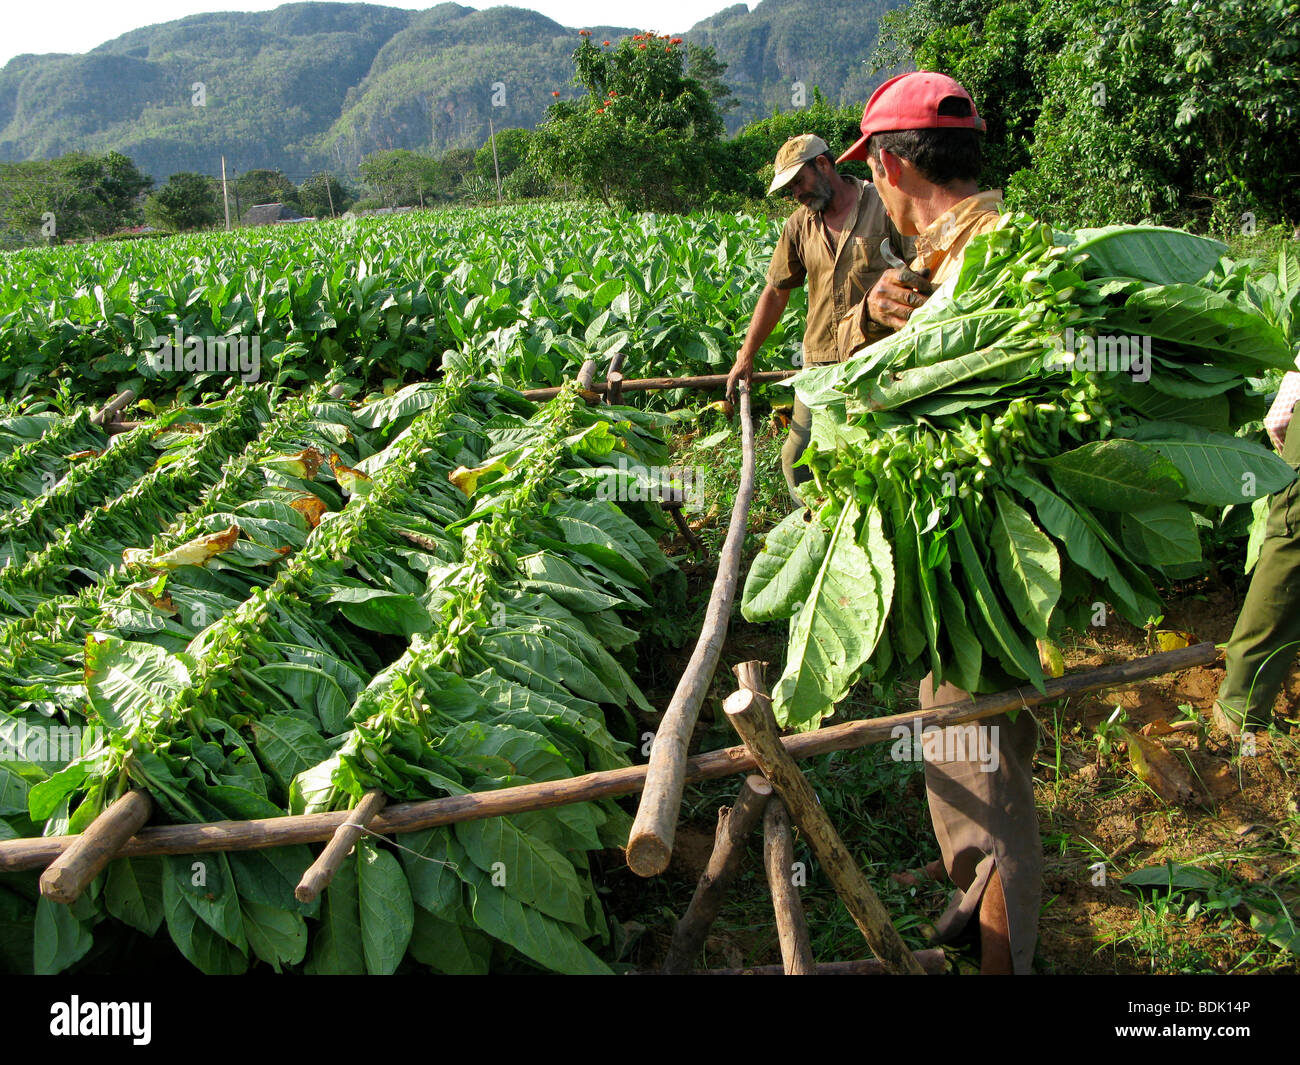 Harvesting tobacco leaves for cigar production at Pinar del Rio. Cuba. - Stock Image